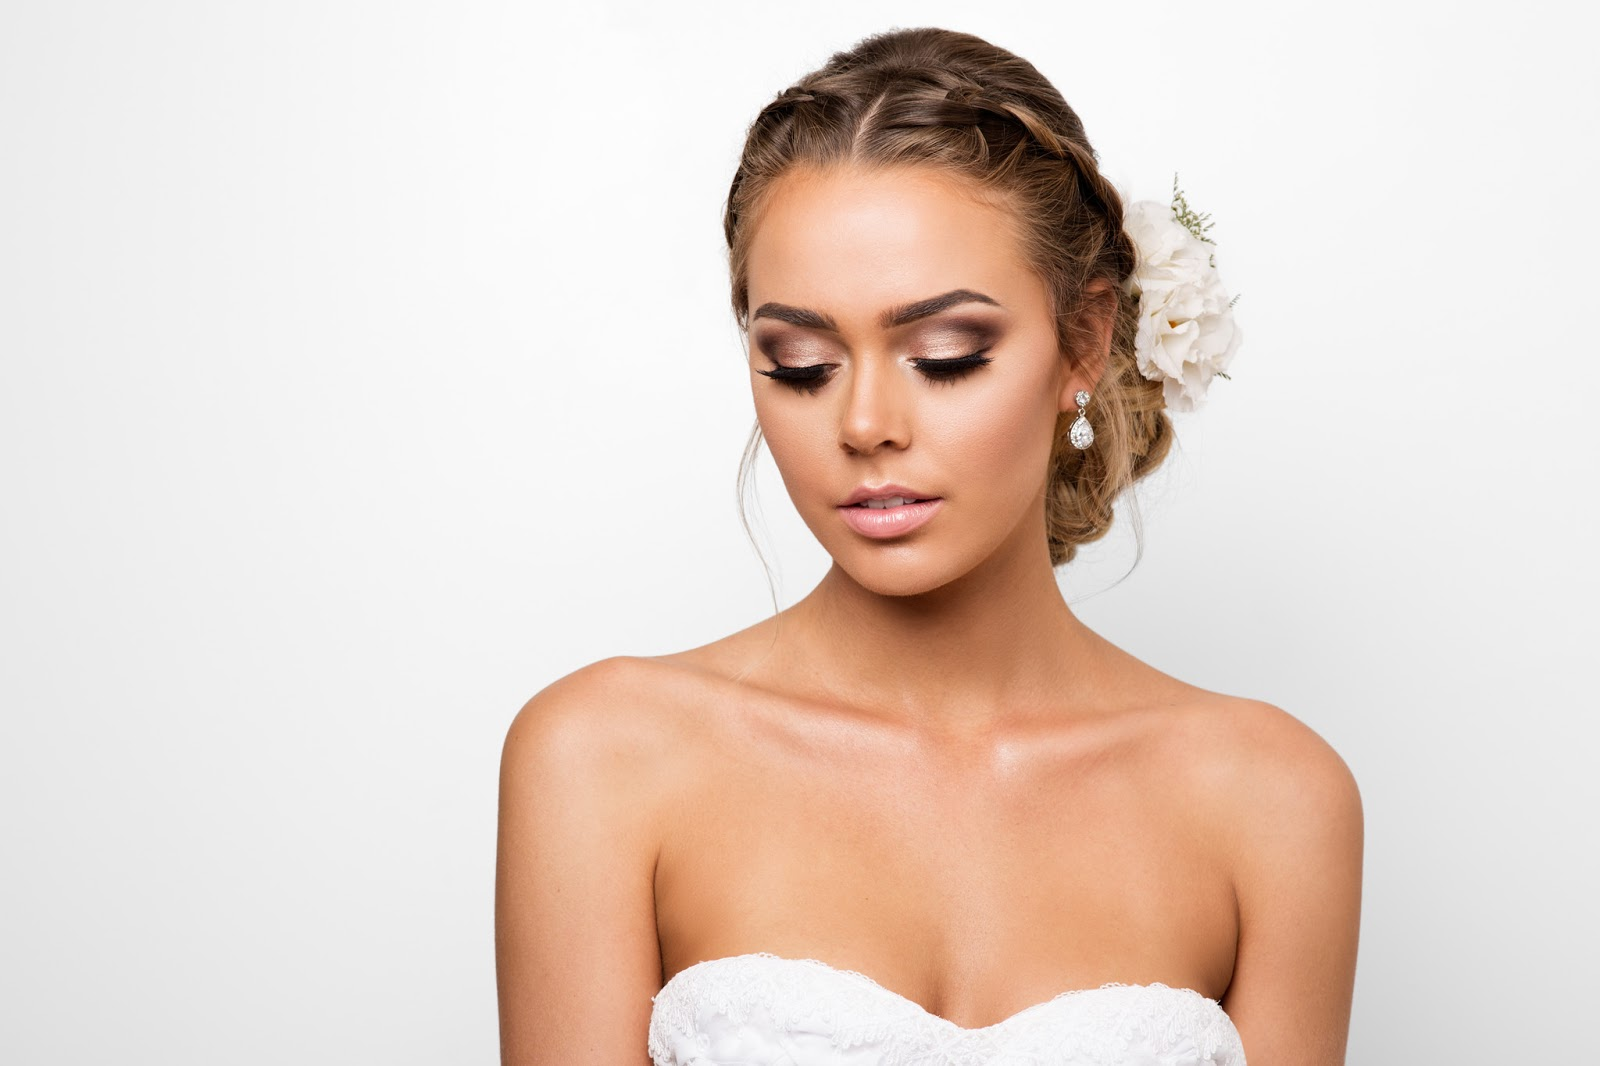 bridal makeup artist hairstylist wedding hair hairstyles weddings